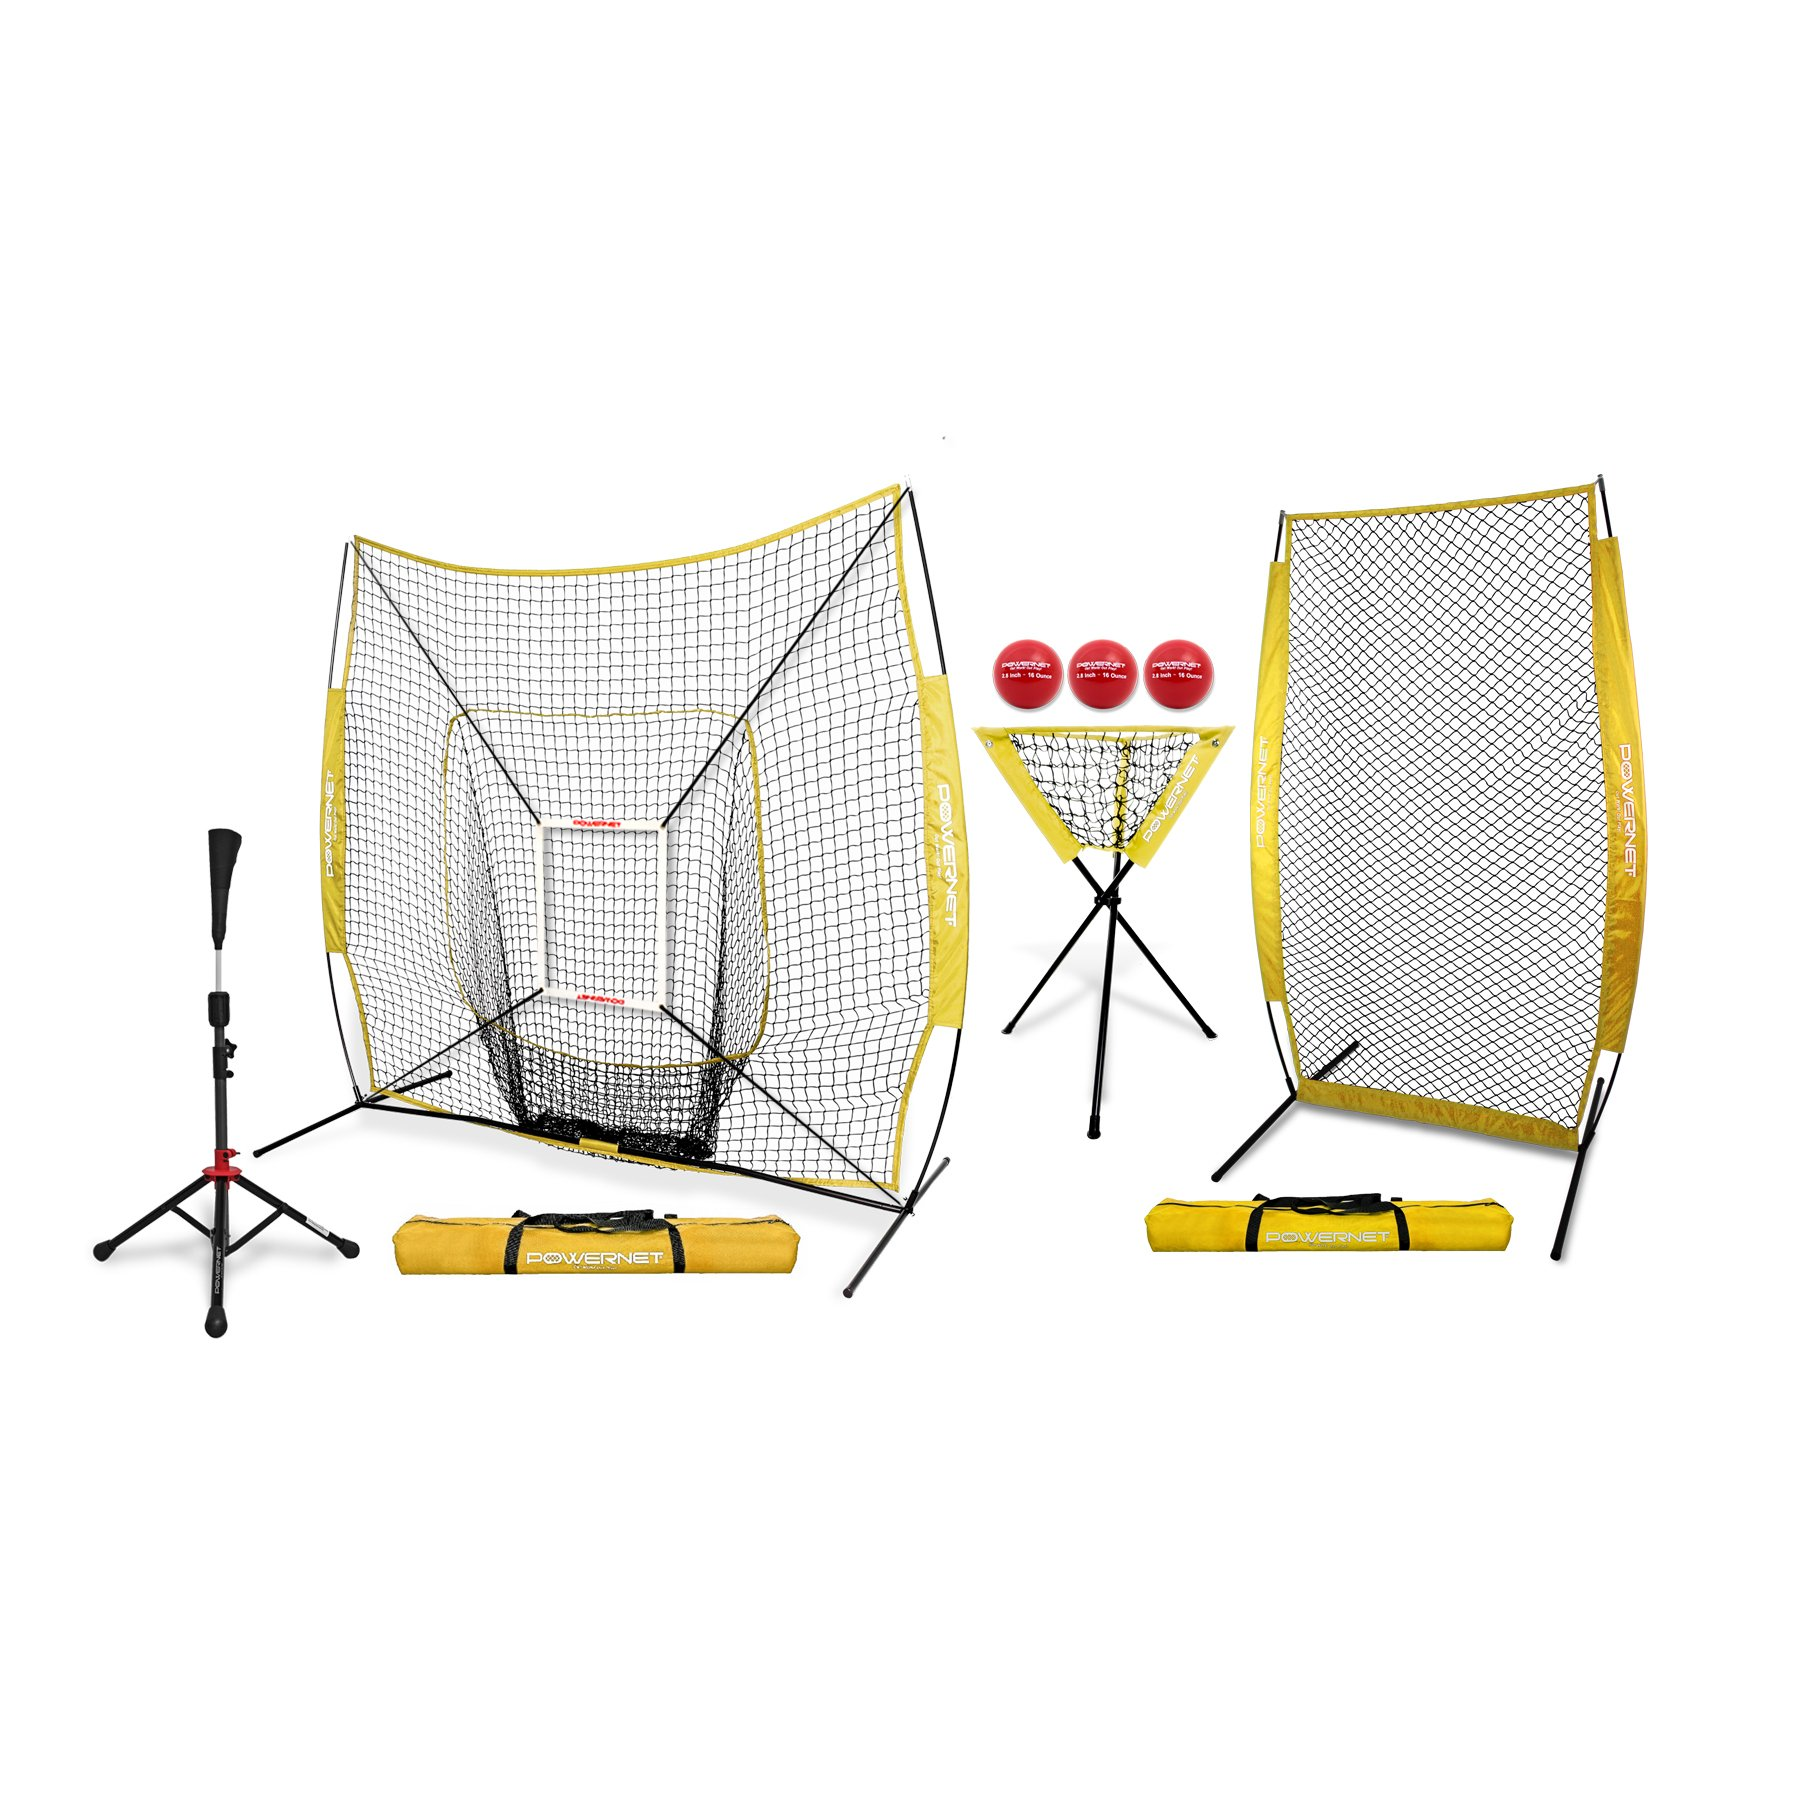 PowerNet [All in ONE Coach Bundle (Yellow) 7x7 DLX Practice Net + I-Screen + Deluxe Tee + Ball Caddy + 3 Pack Weighted Training Ball + Strike Zone Bundle | Baseball Softball Pitching Batting by PowerNet